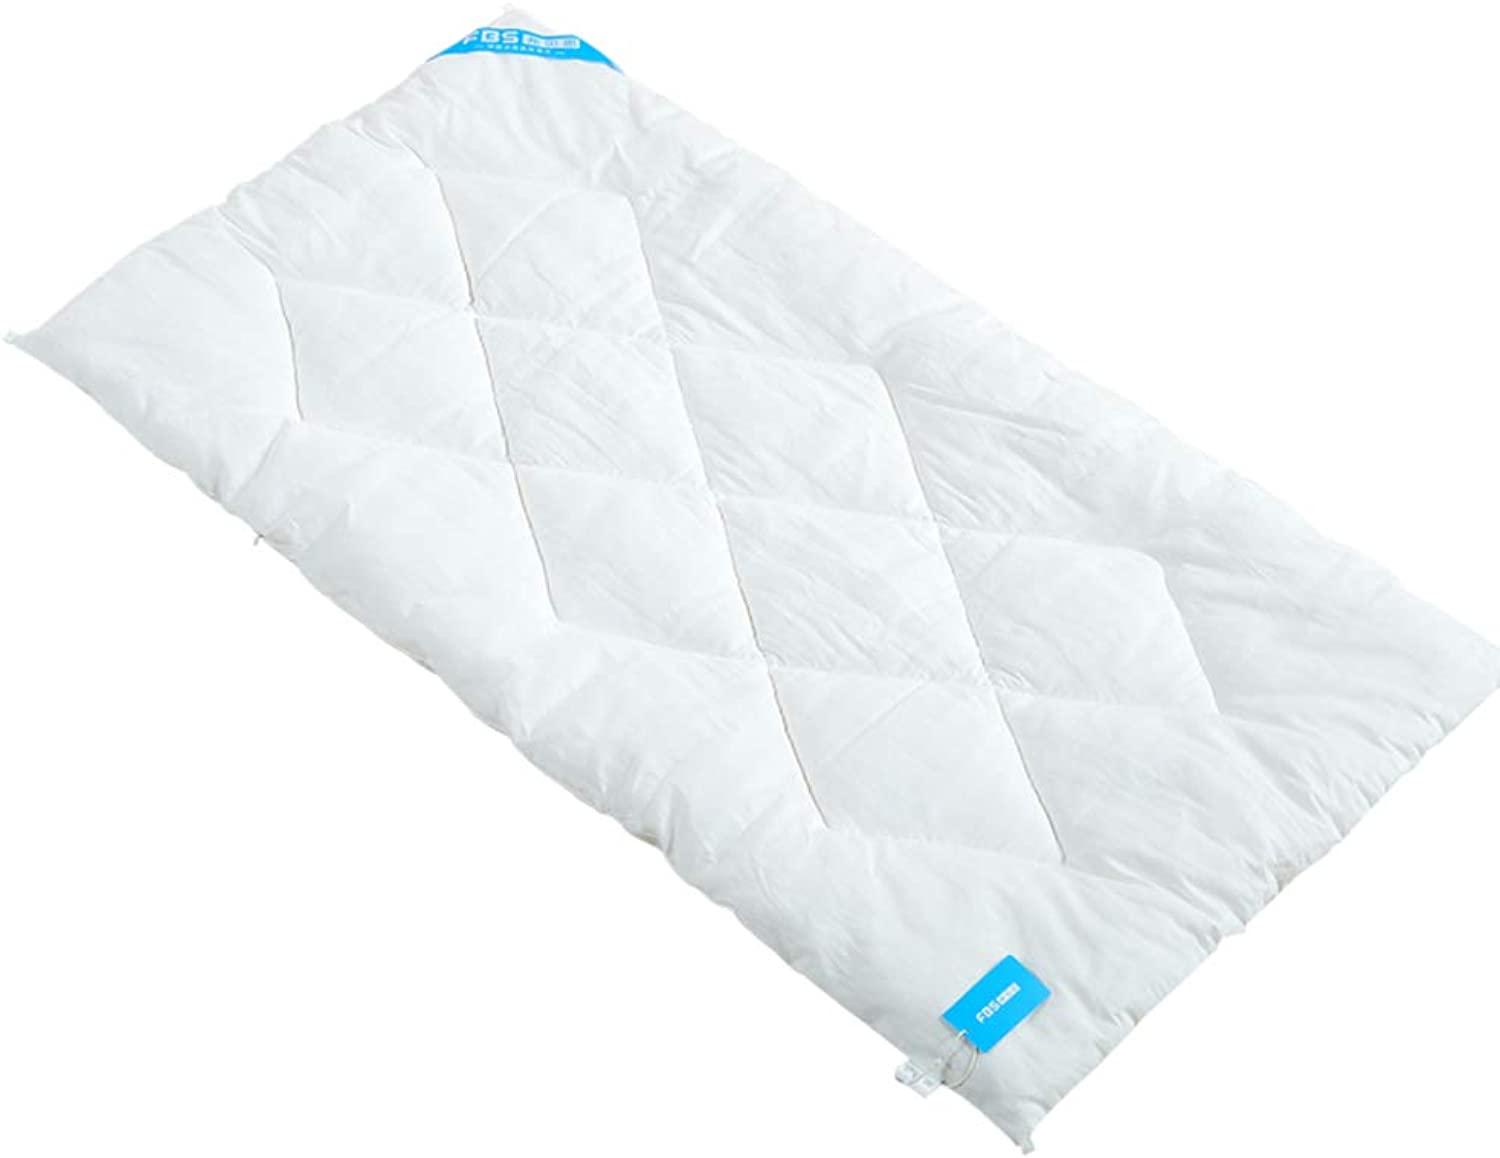 Soft Thick Cotton Mattress,Quilted Toddler Nap mat Fluffy Non-Slip Breathable Anti-Bacterial Toddler Rolled Nap mat Sleeping pad-White 60x110cm(24x43inch)